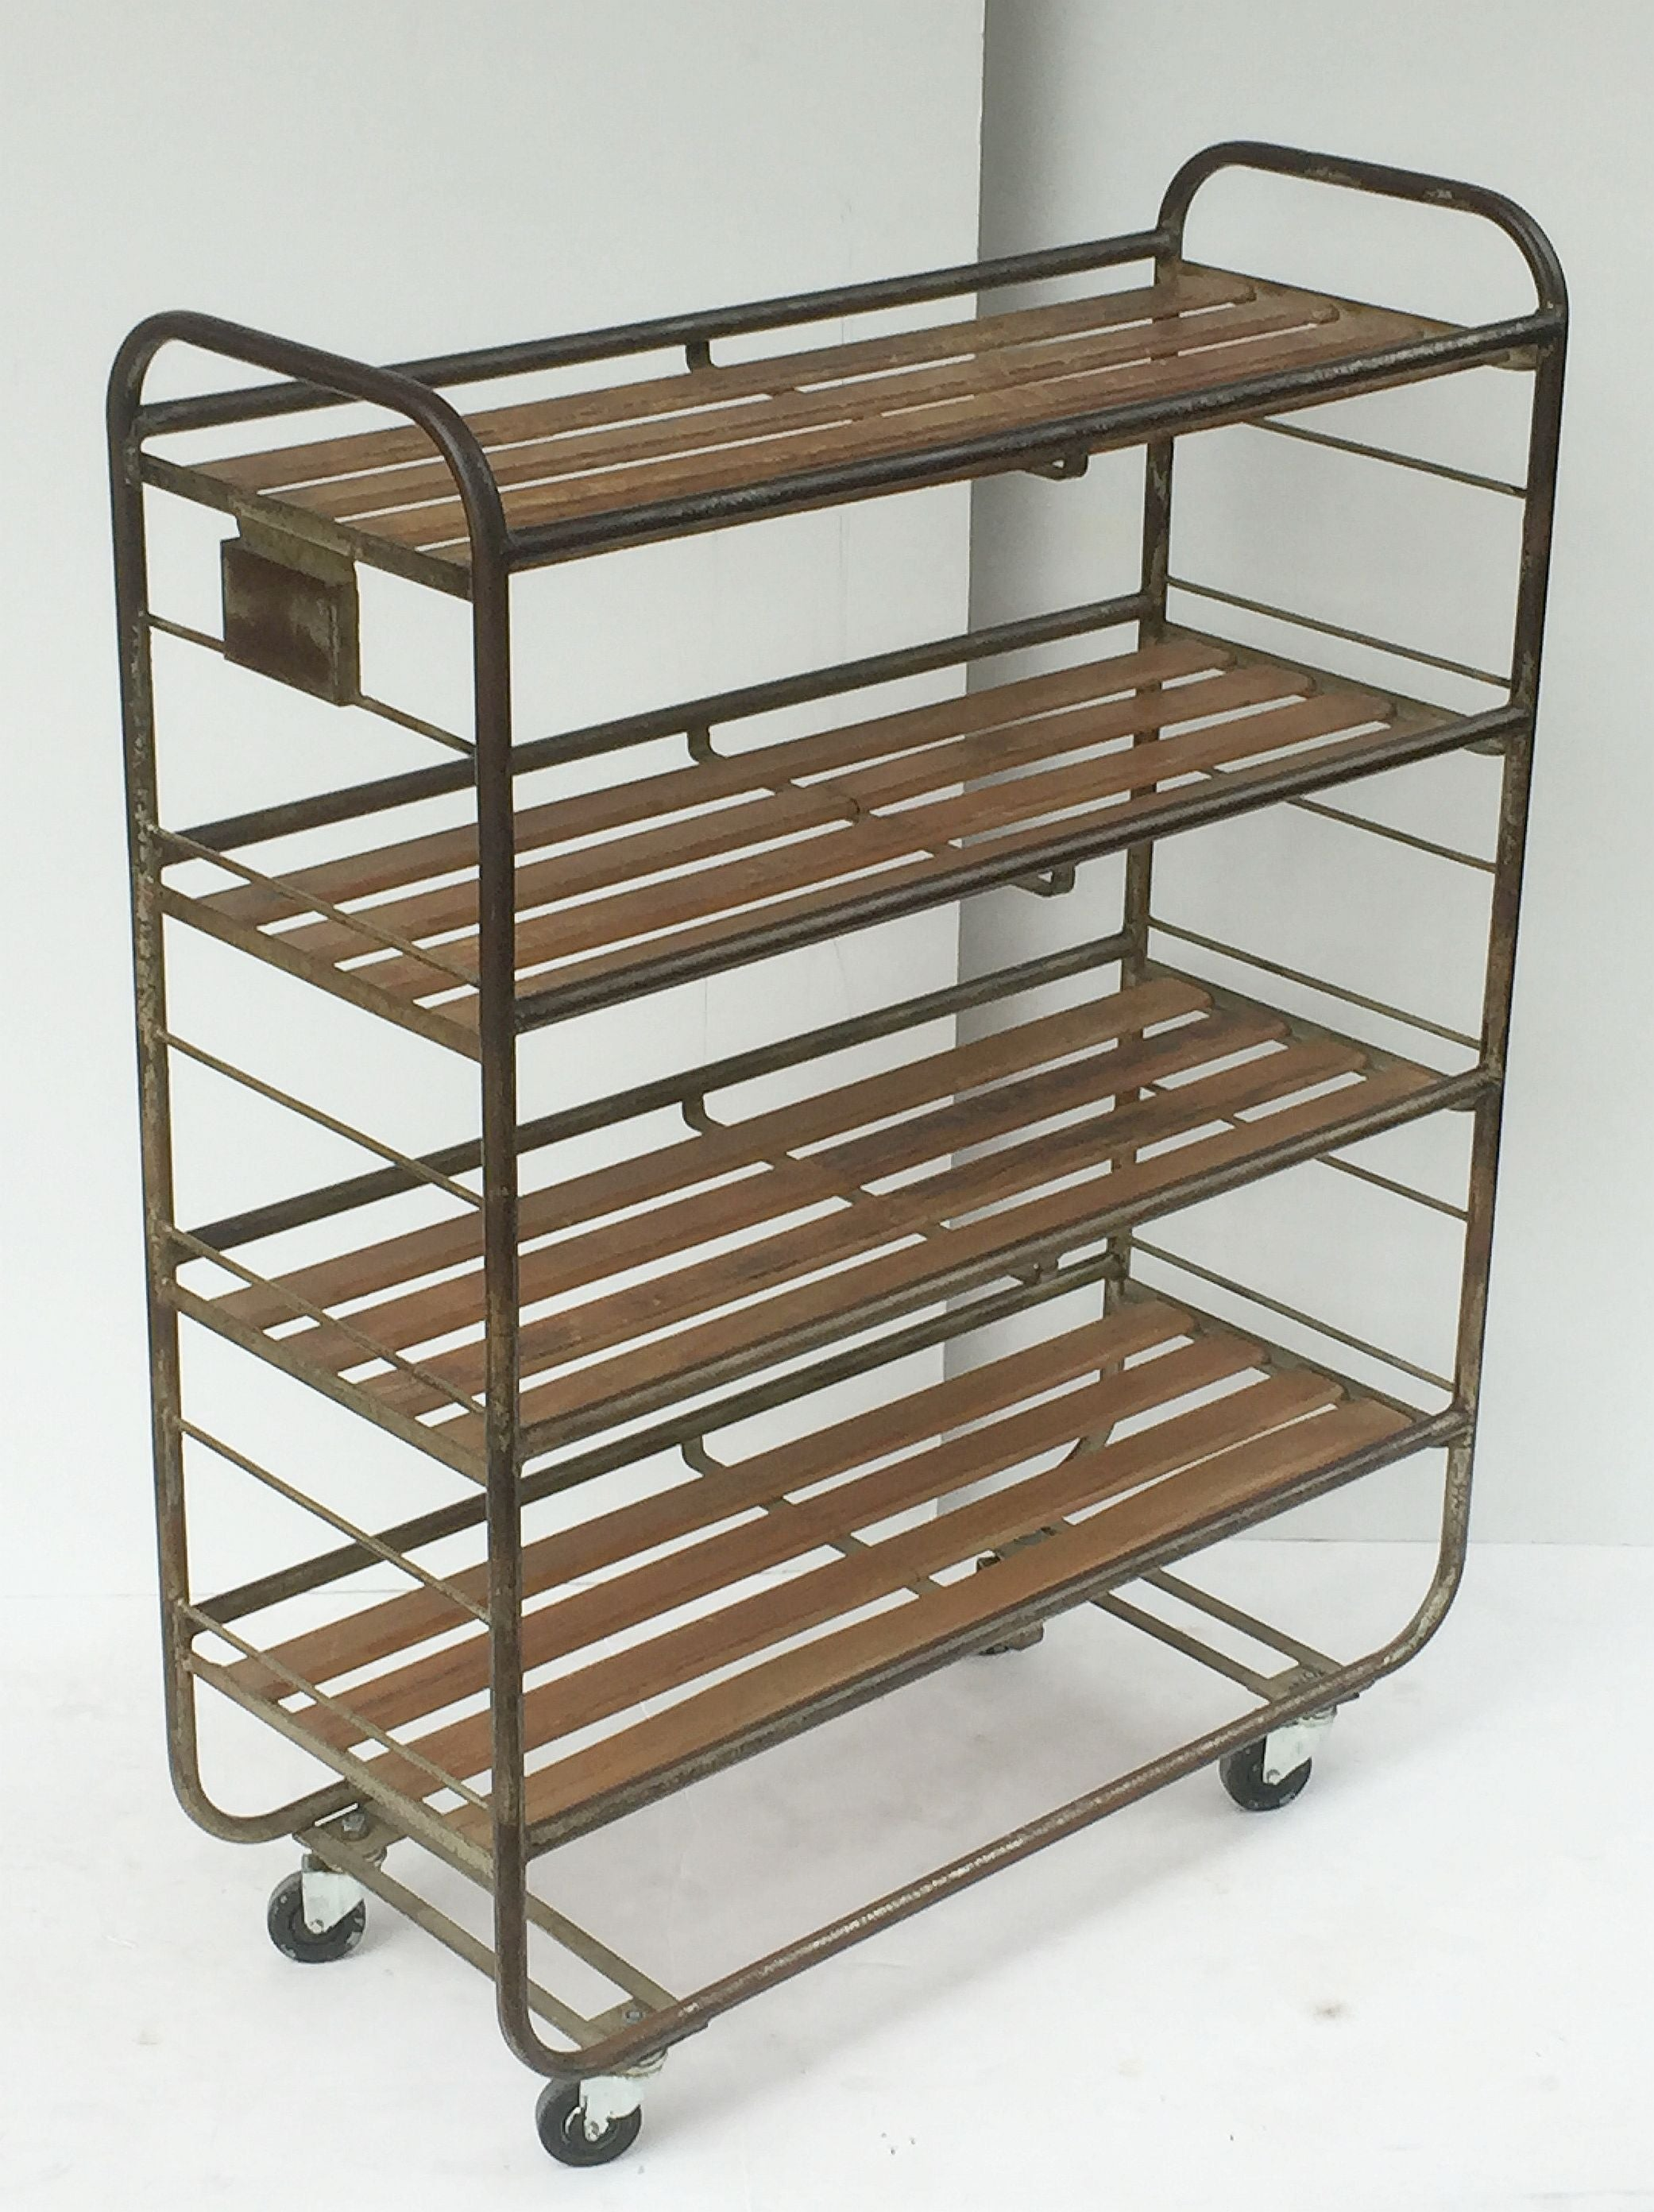 collectibles f one of available sale rolling wood industrial id at steel rack racks and furniture more for french pair org